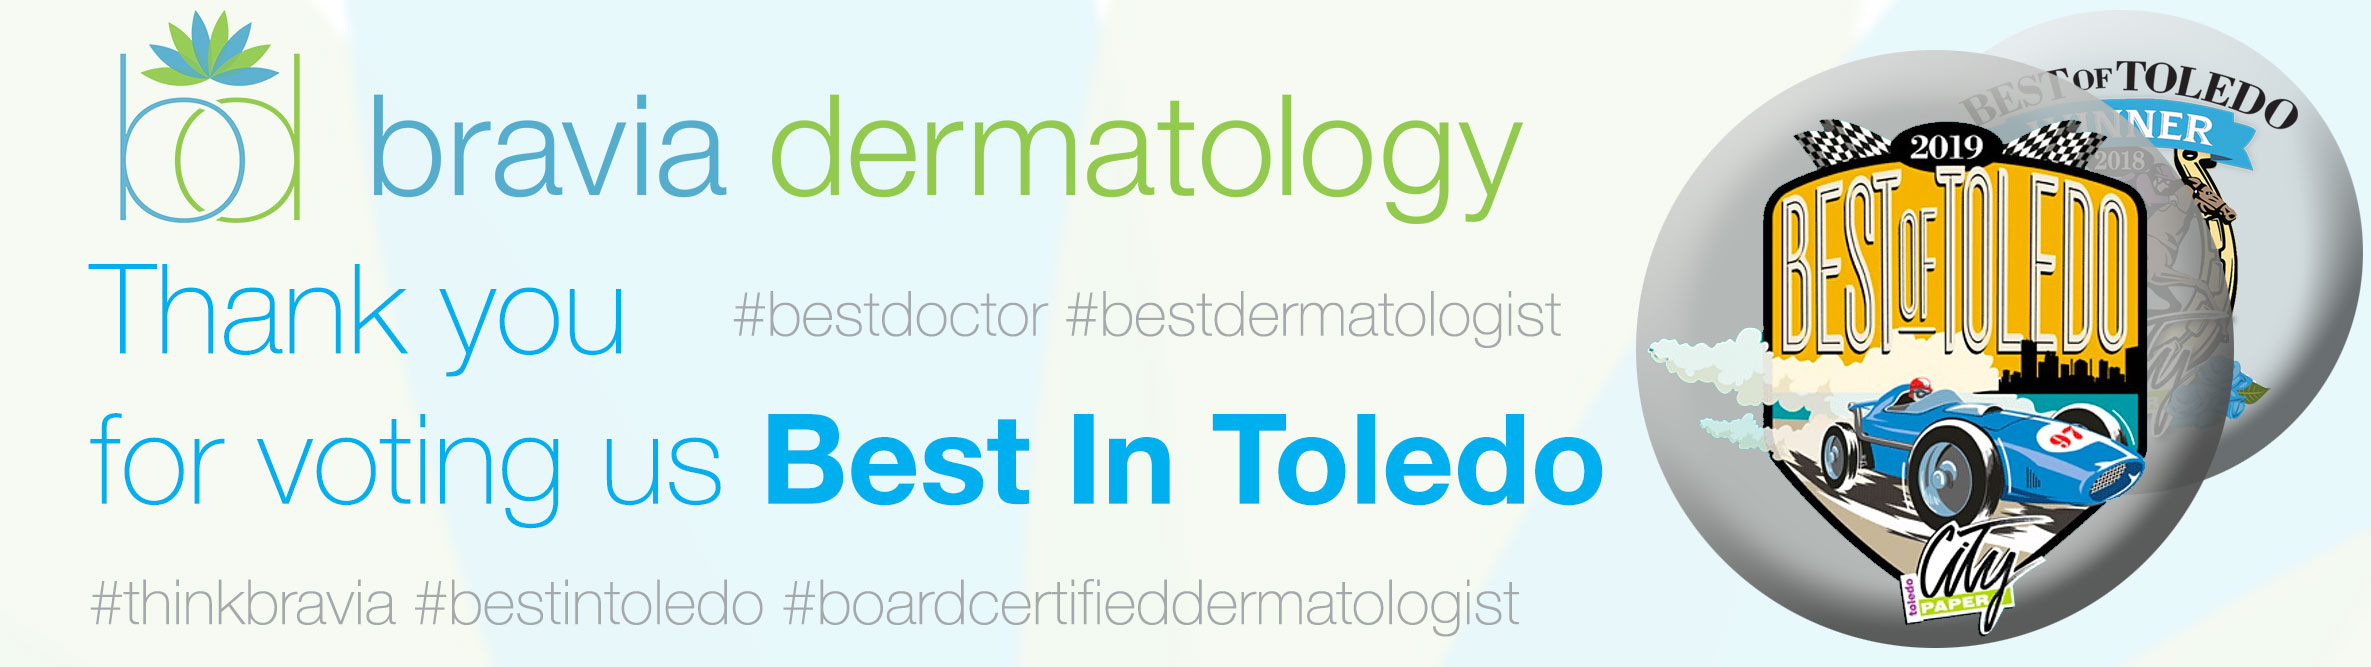 Bravia Dermatology voted Best Dermatologist in Toledo, Dr. Molenda of Bravia Dermatology voted Best Doctor in Toledo.